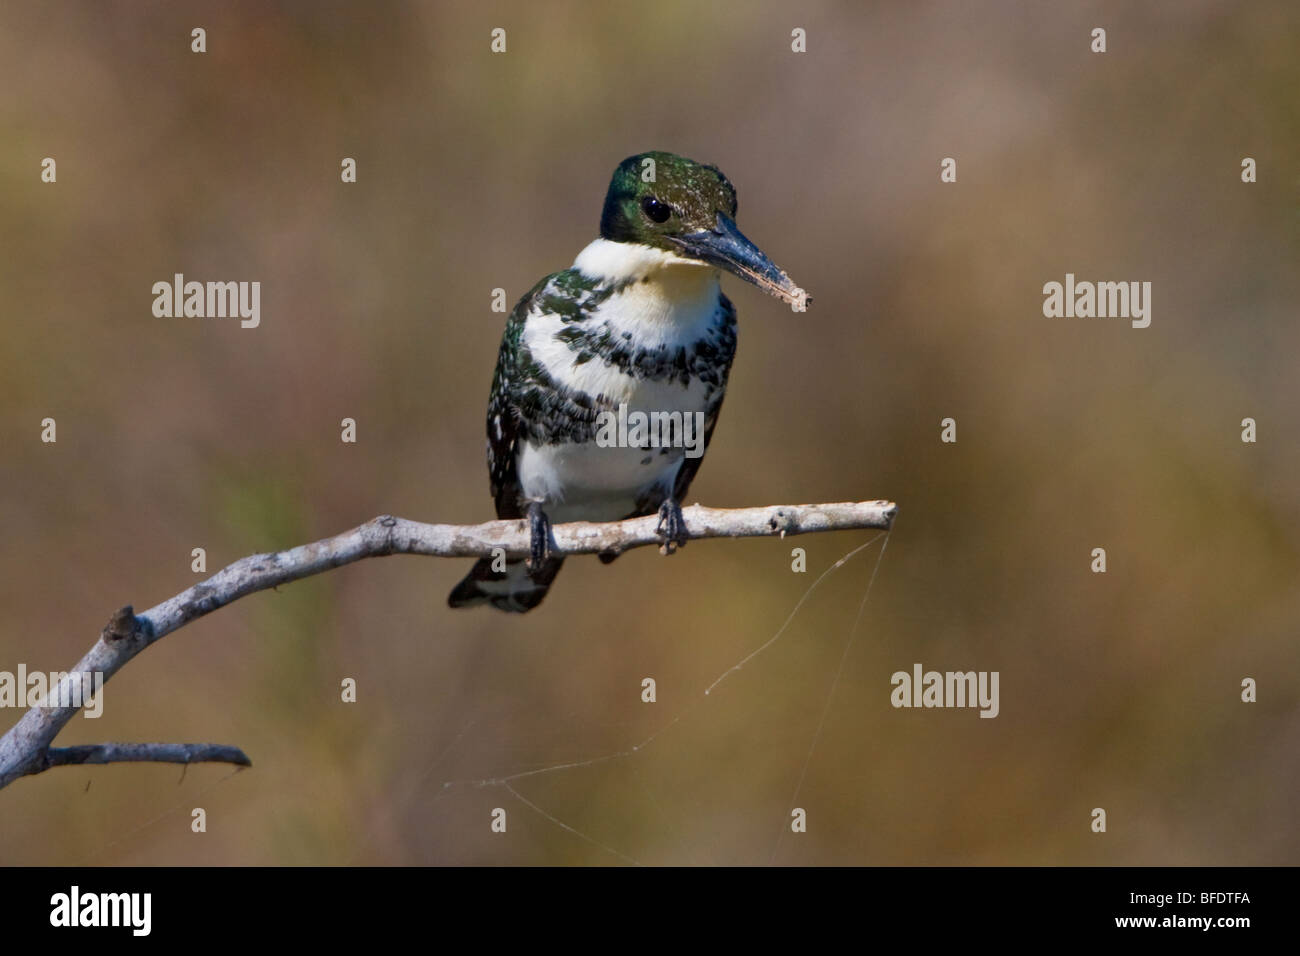 Green Kingfisher (Chloroceryle americana) perched on a branch at Estero Llano Grande State Park in Texas, USA - Stock Image